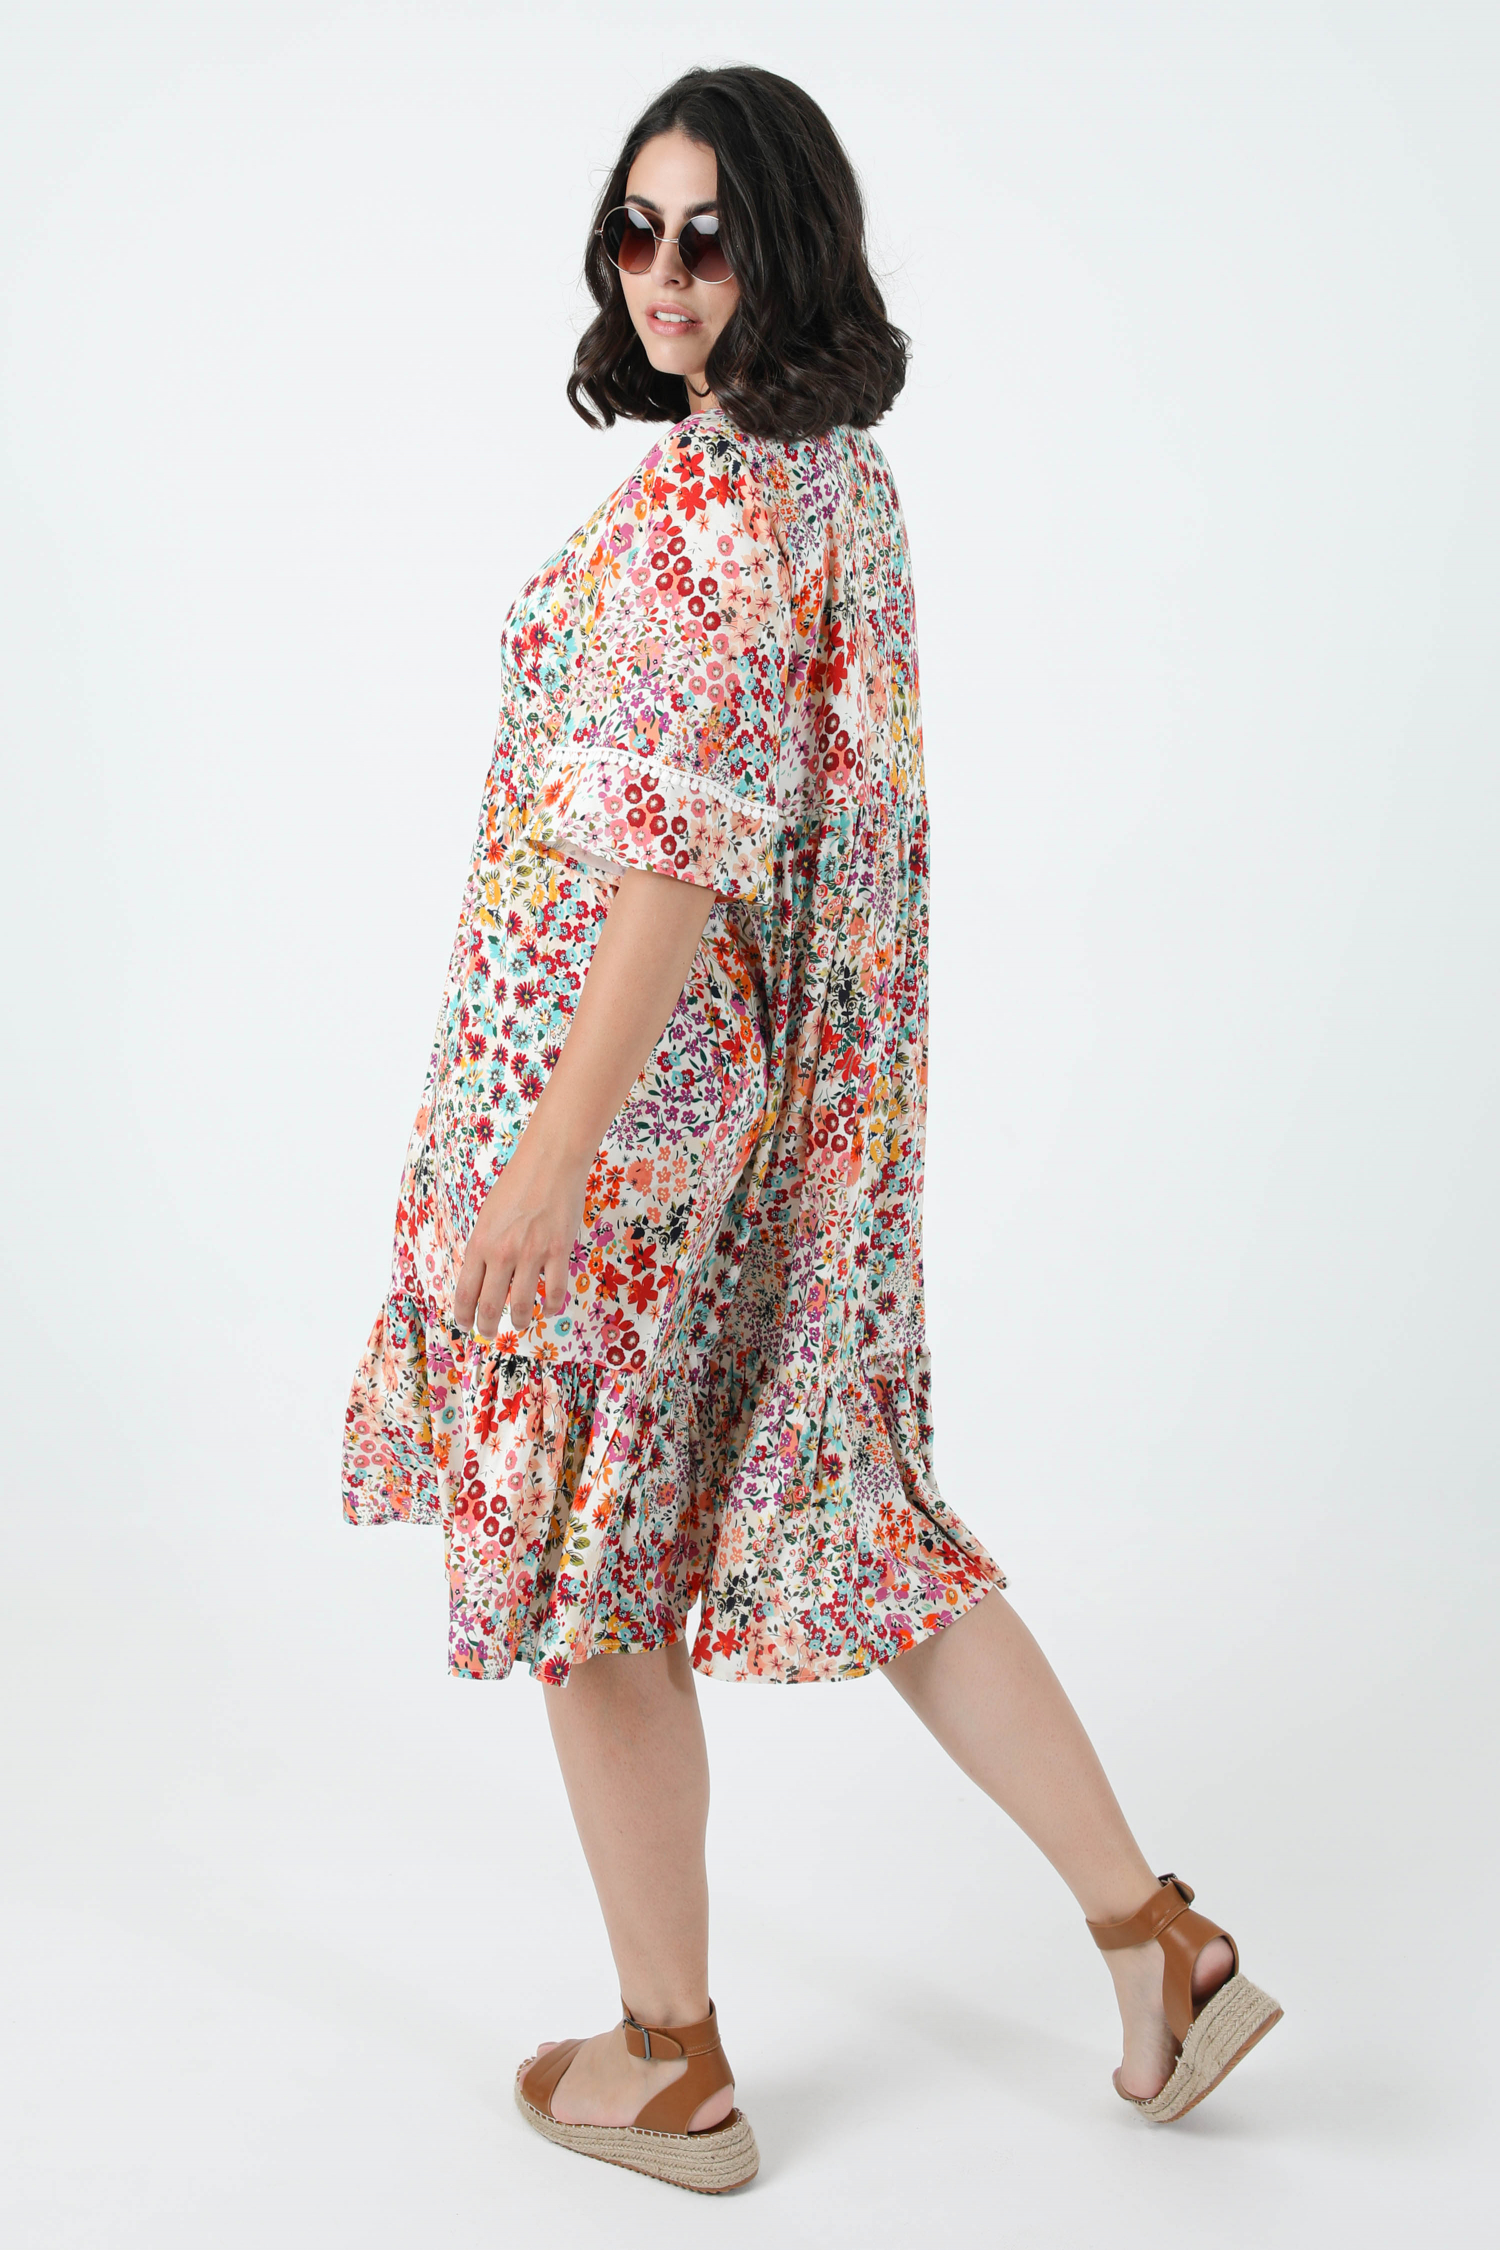 Mid-length dress printed with oeko-tex fabrics (expedition 25/30 June)